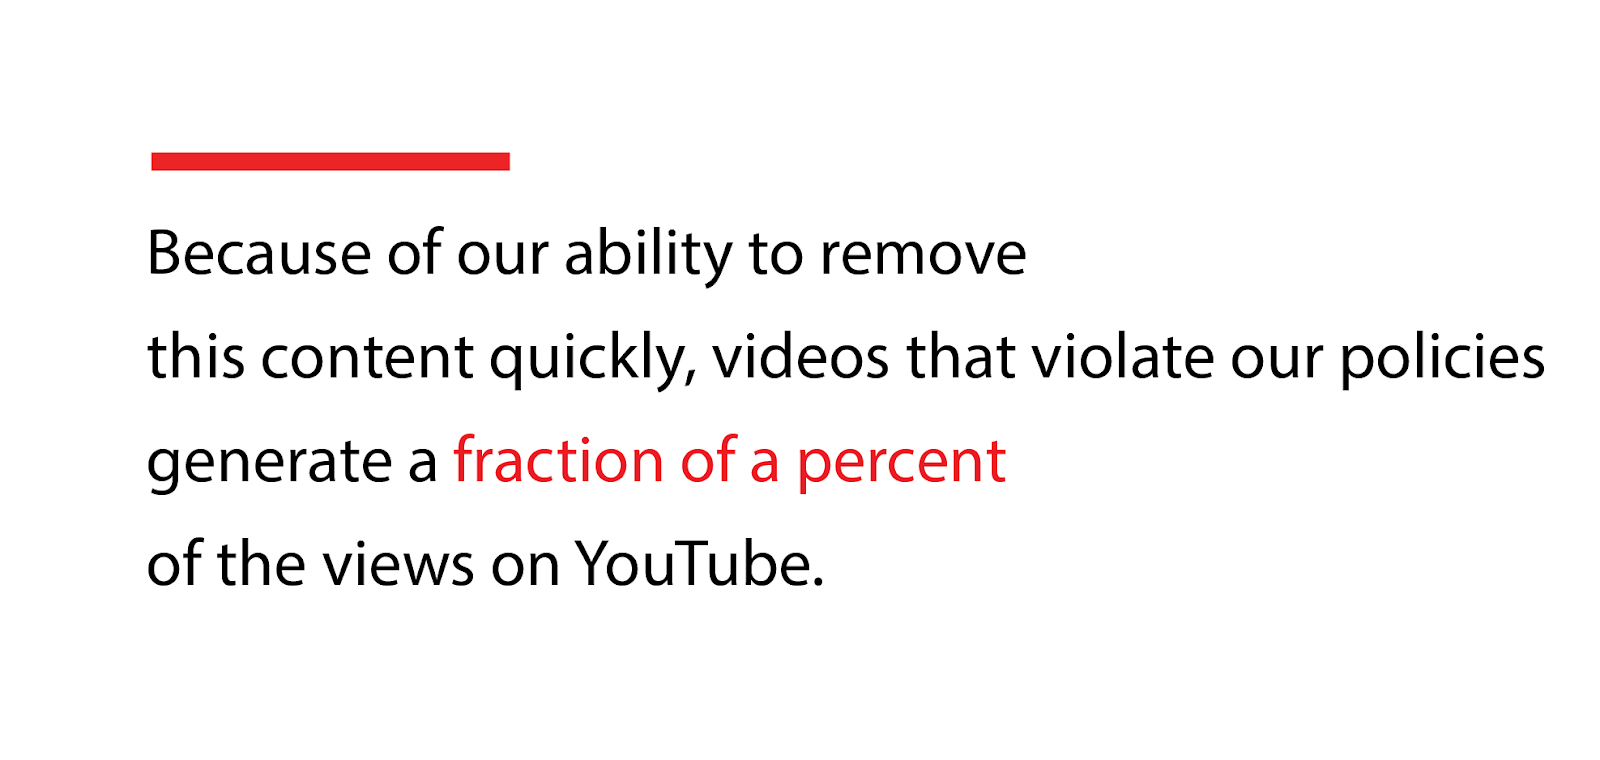 Videos that violate our policies generate a fraction of a percent of the views on YouTube